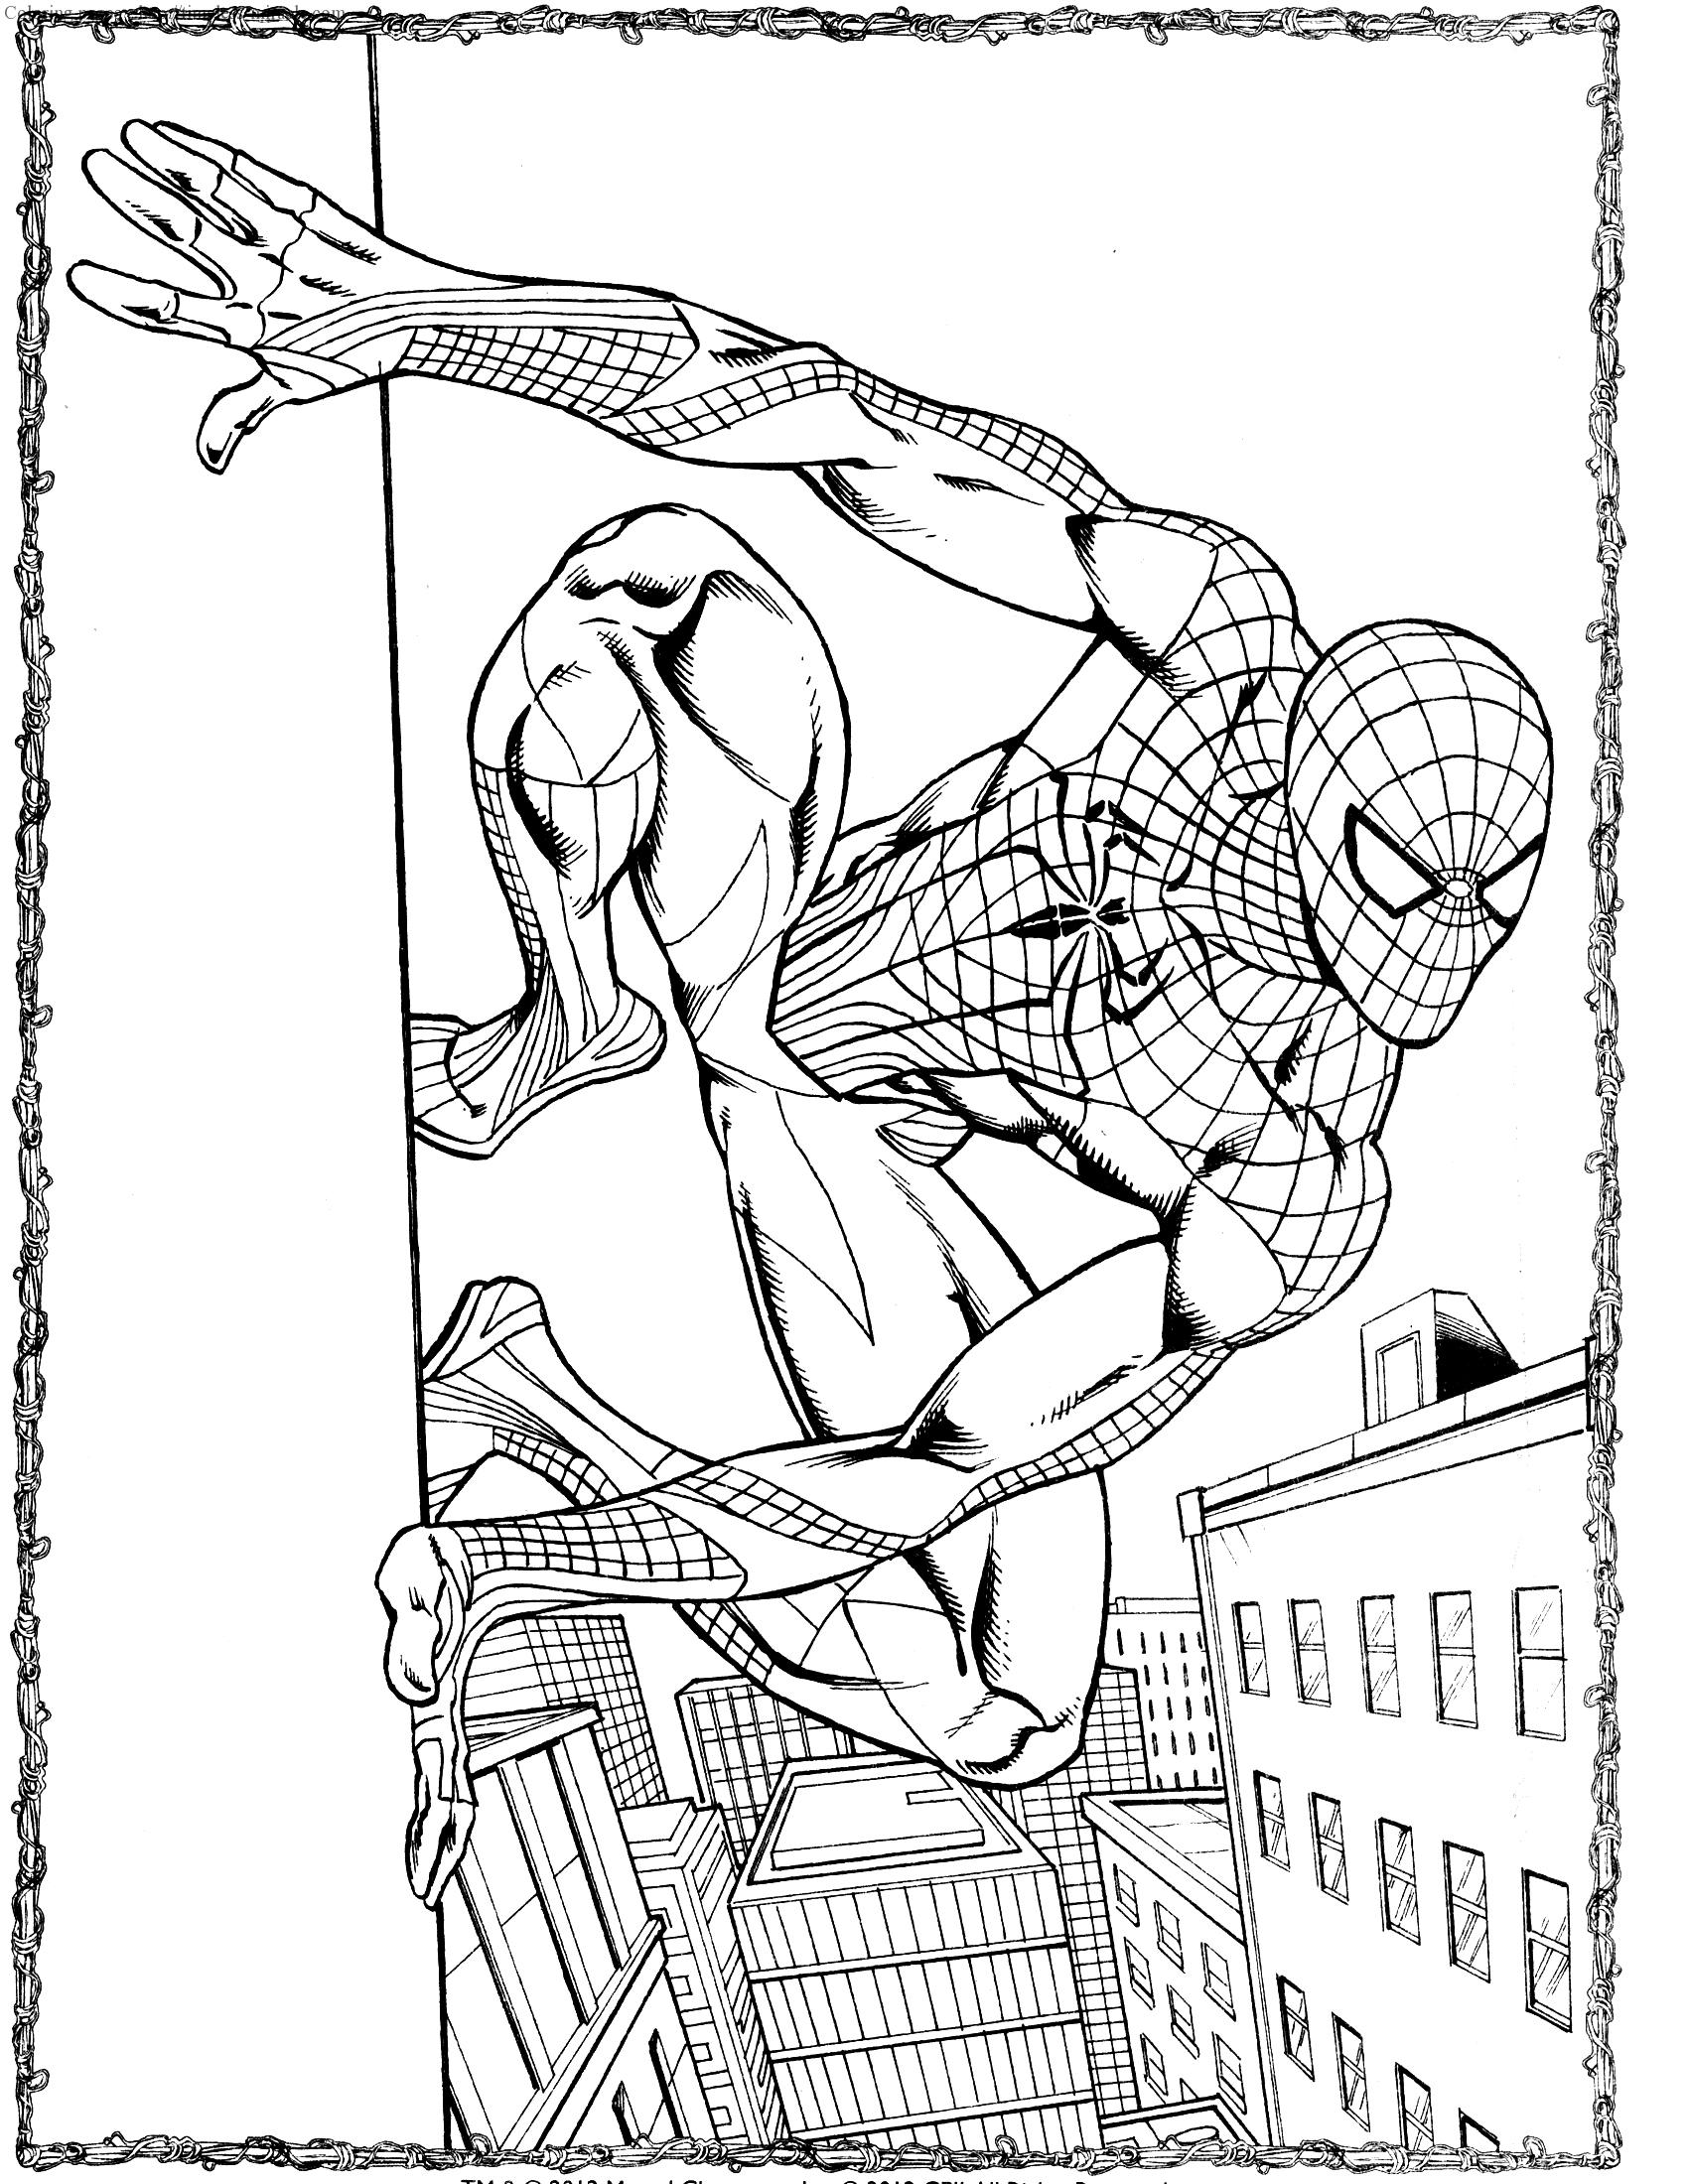 spider man 3 coloring pages spiderman 3 coloring pages coloringpages1001com 3 coloring man pages spider